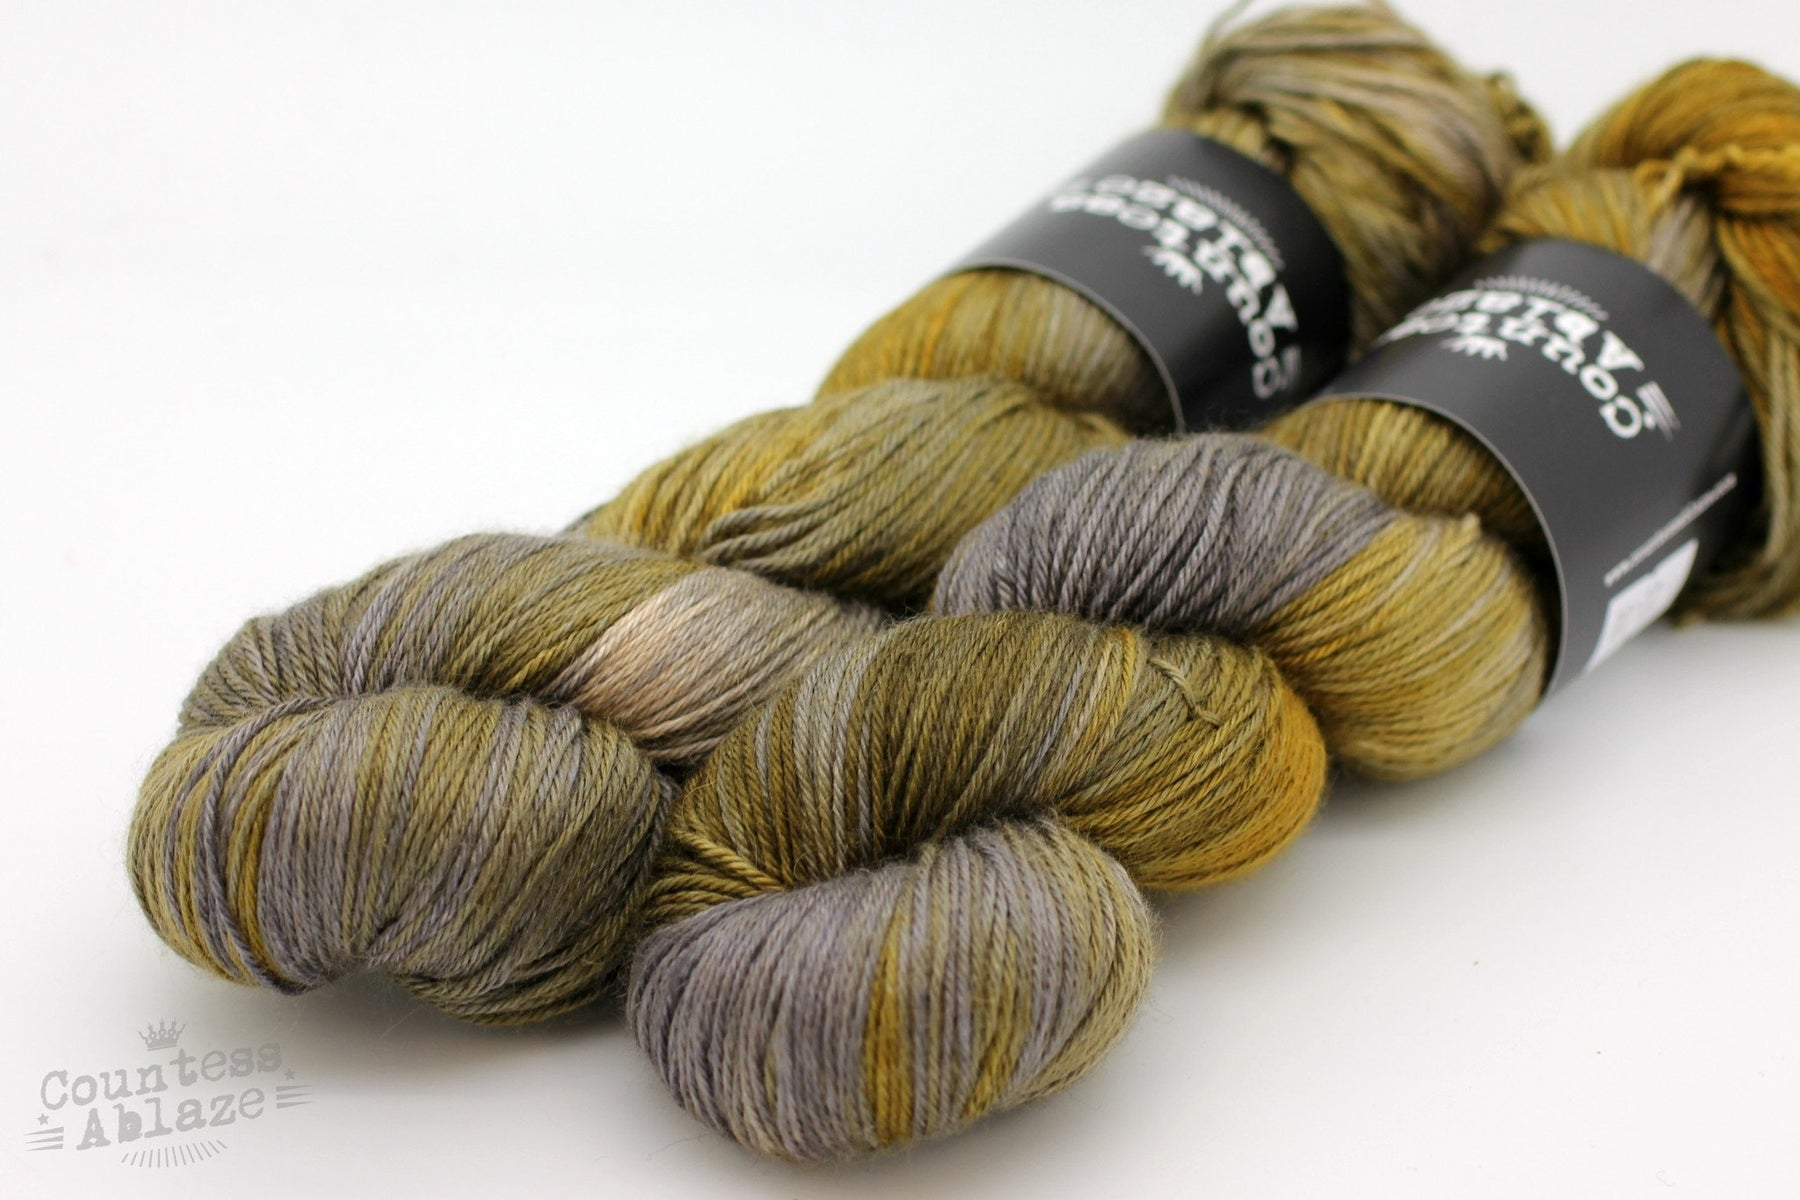 Colourway : Industrial Countess Ablaze